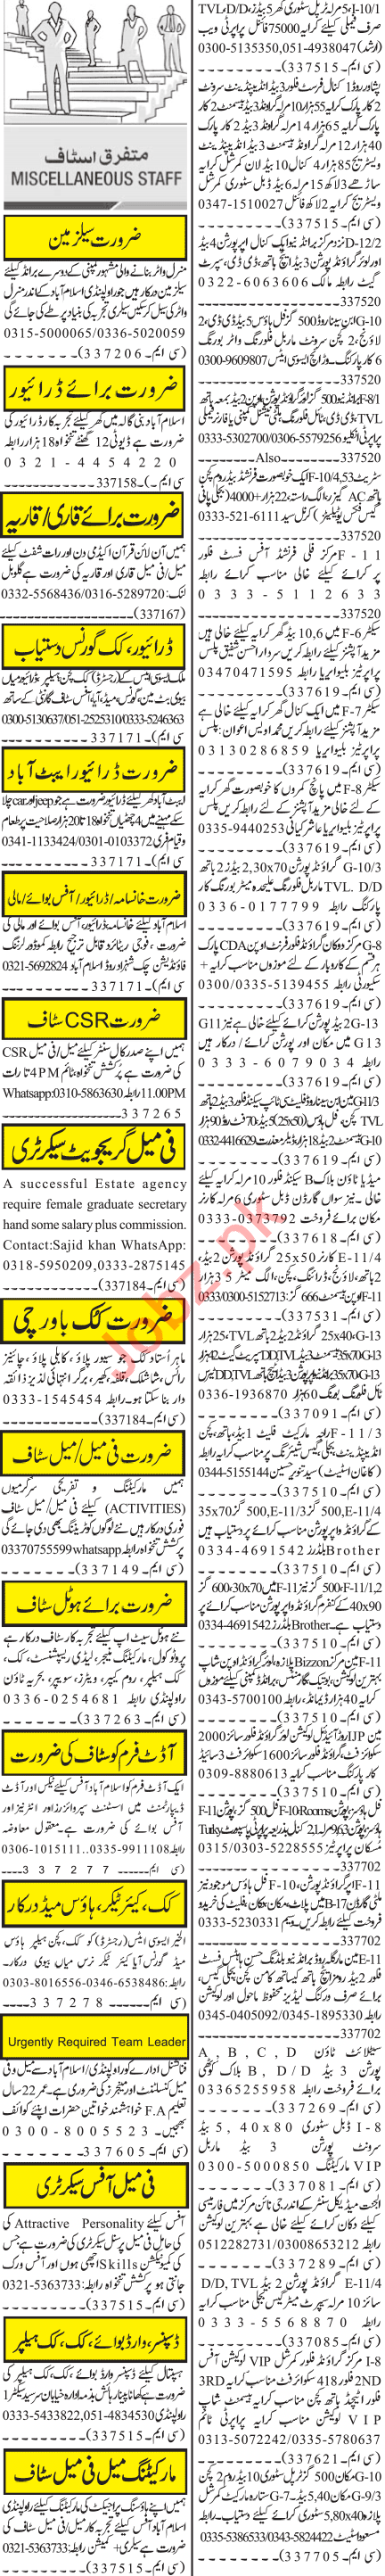 Jang Sunday Classified Ads 1st August 2021 for Management